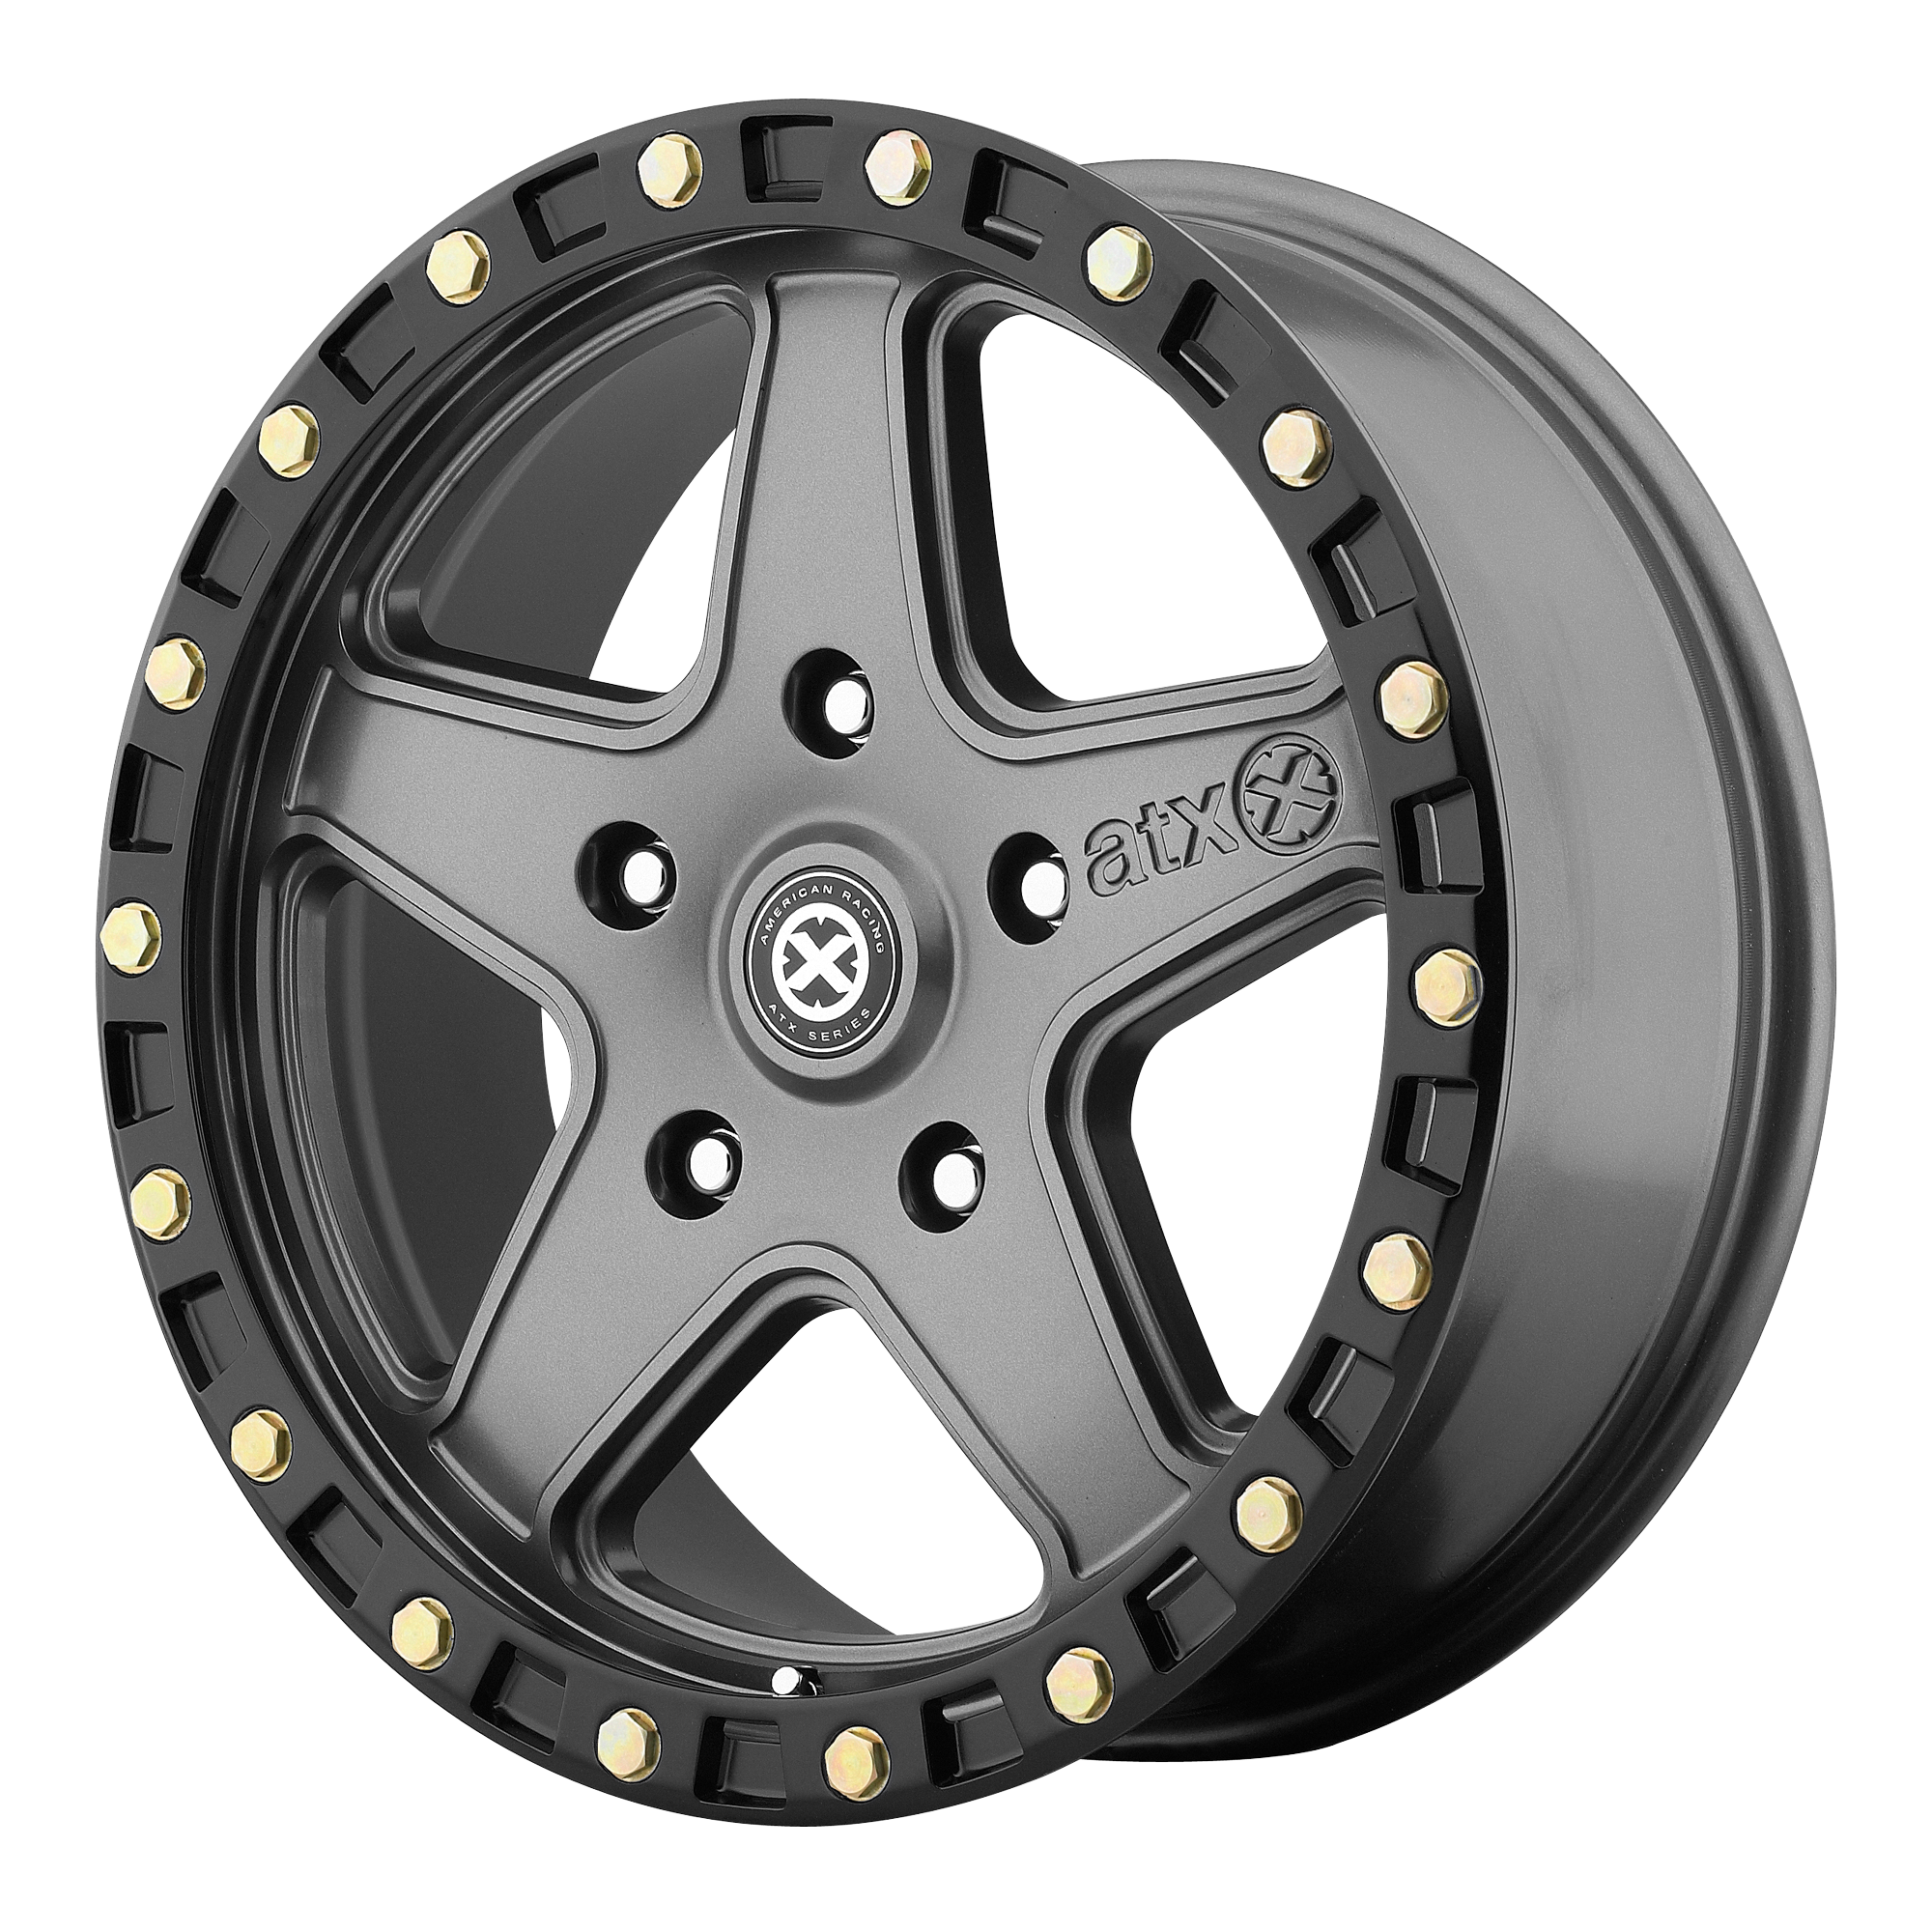 ATX Series Offroad Wheels RAVINE Matte Gray w/ Black RING